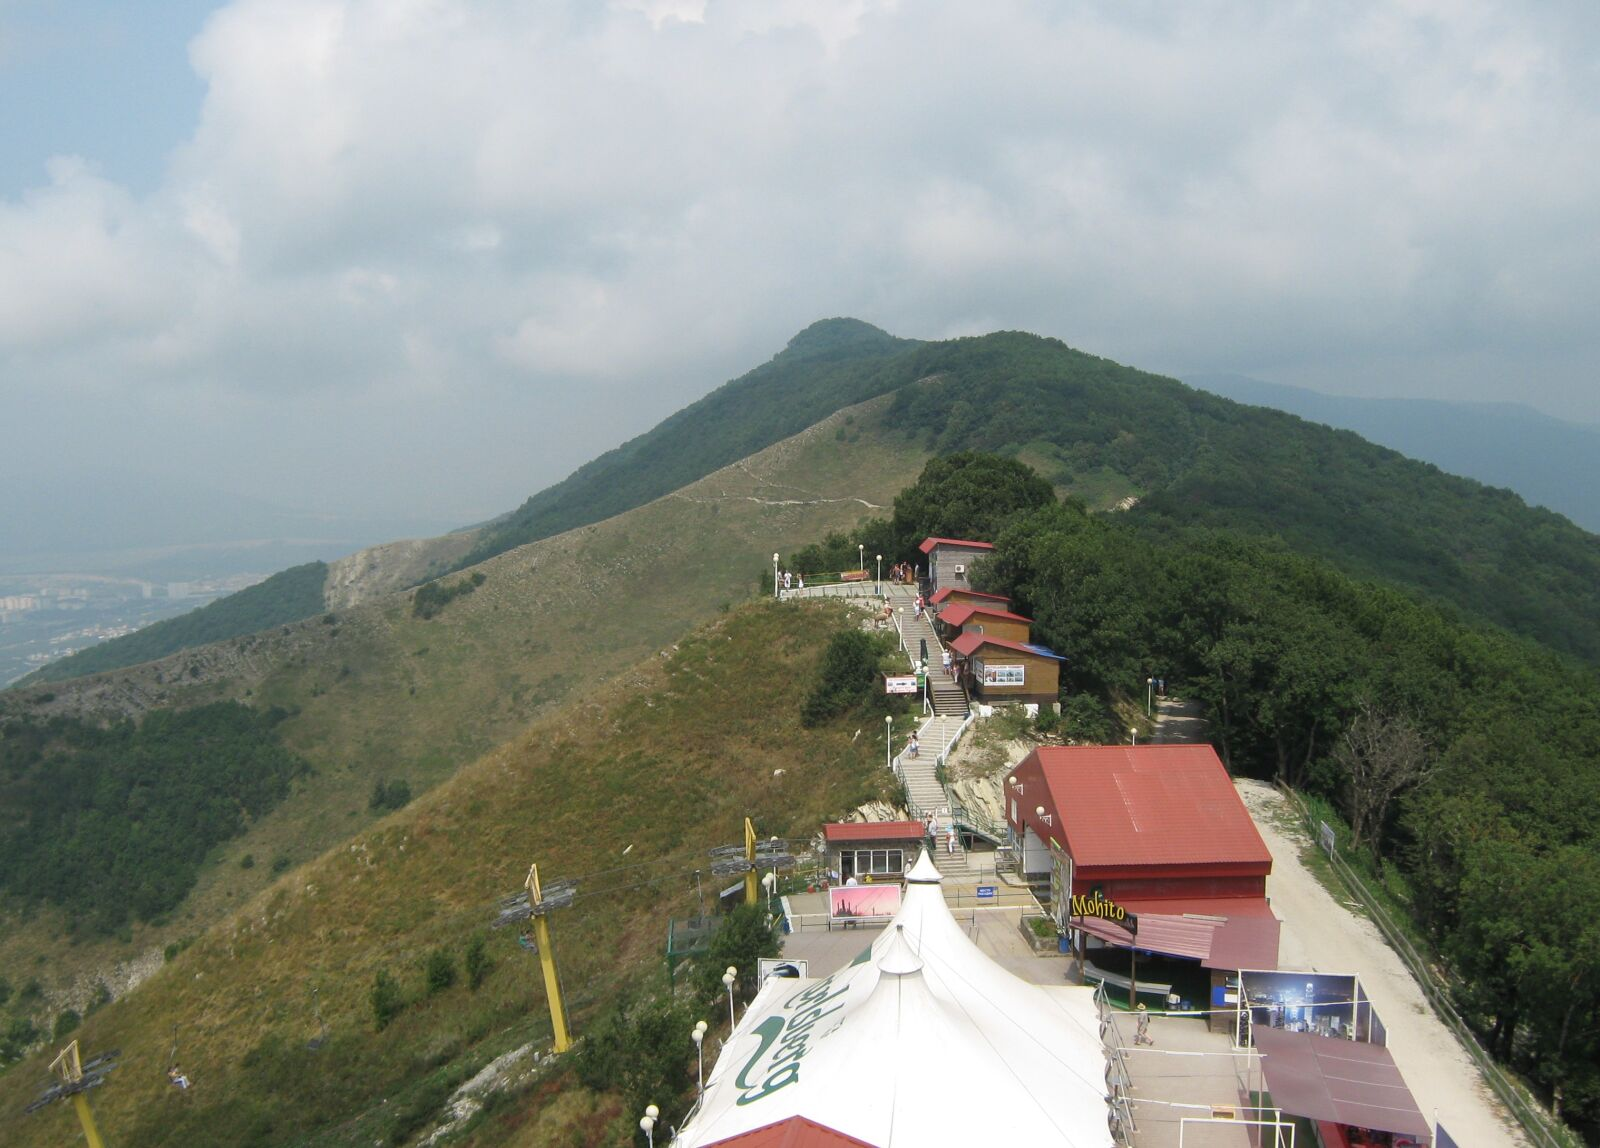 """Canon PowerShot A470 sample photo. """"Mountains, height, resort"""" photography"""